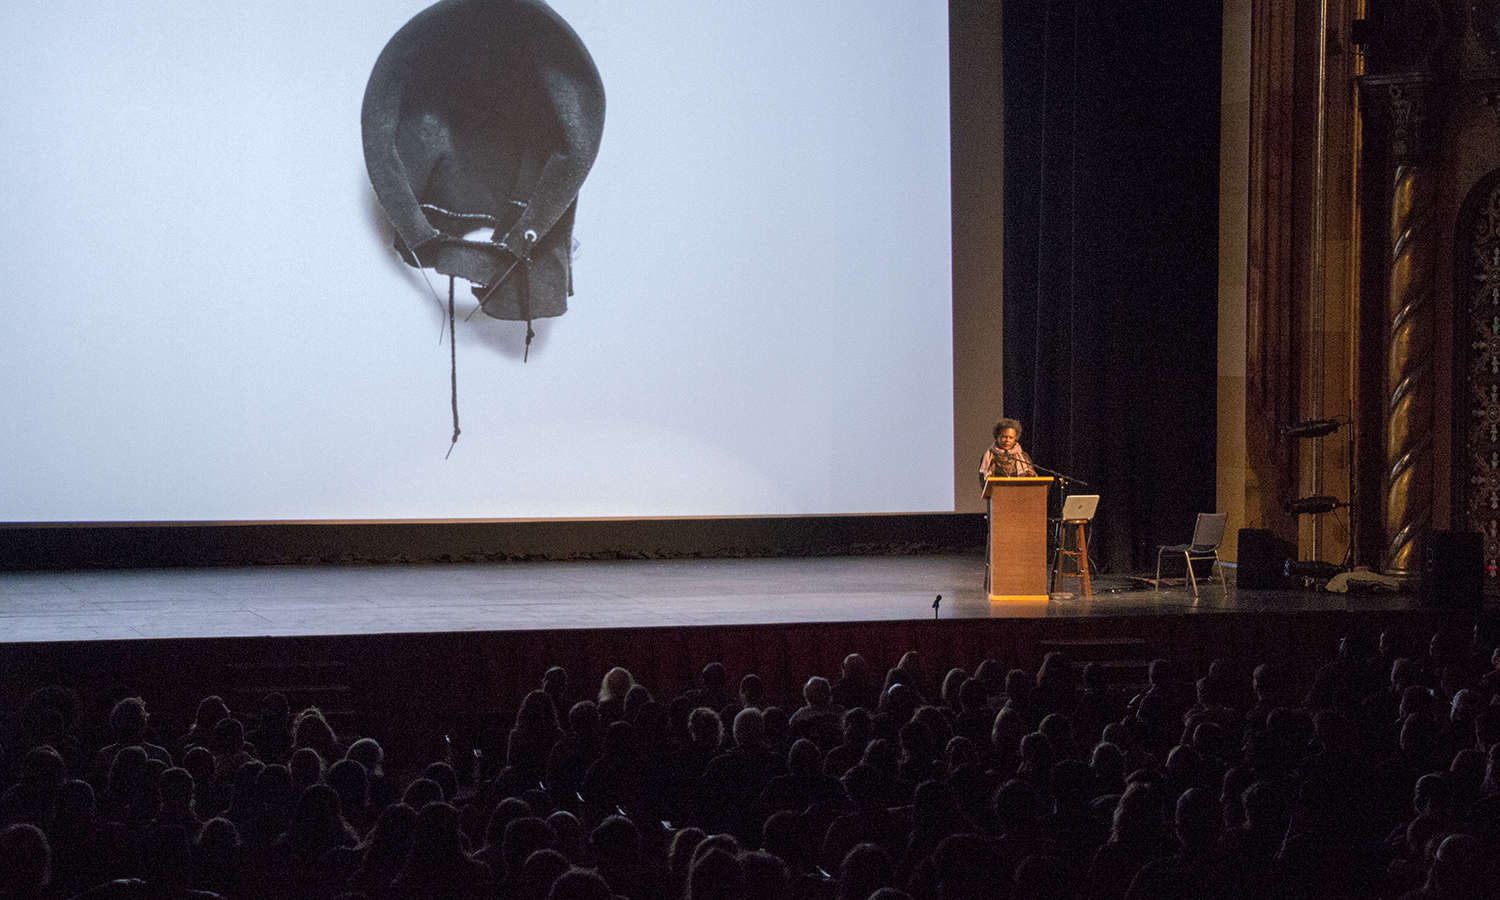 Professor Claudia Rankine, the author of Citizen: An American Lyric will be doing a reading from her book and a Question-and-Answer section at the Smith Opera House.